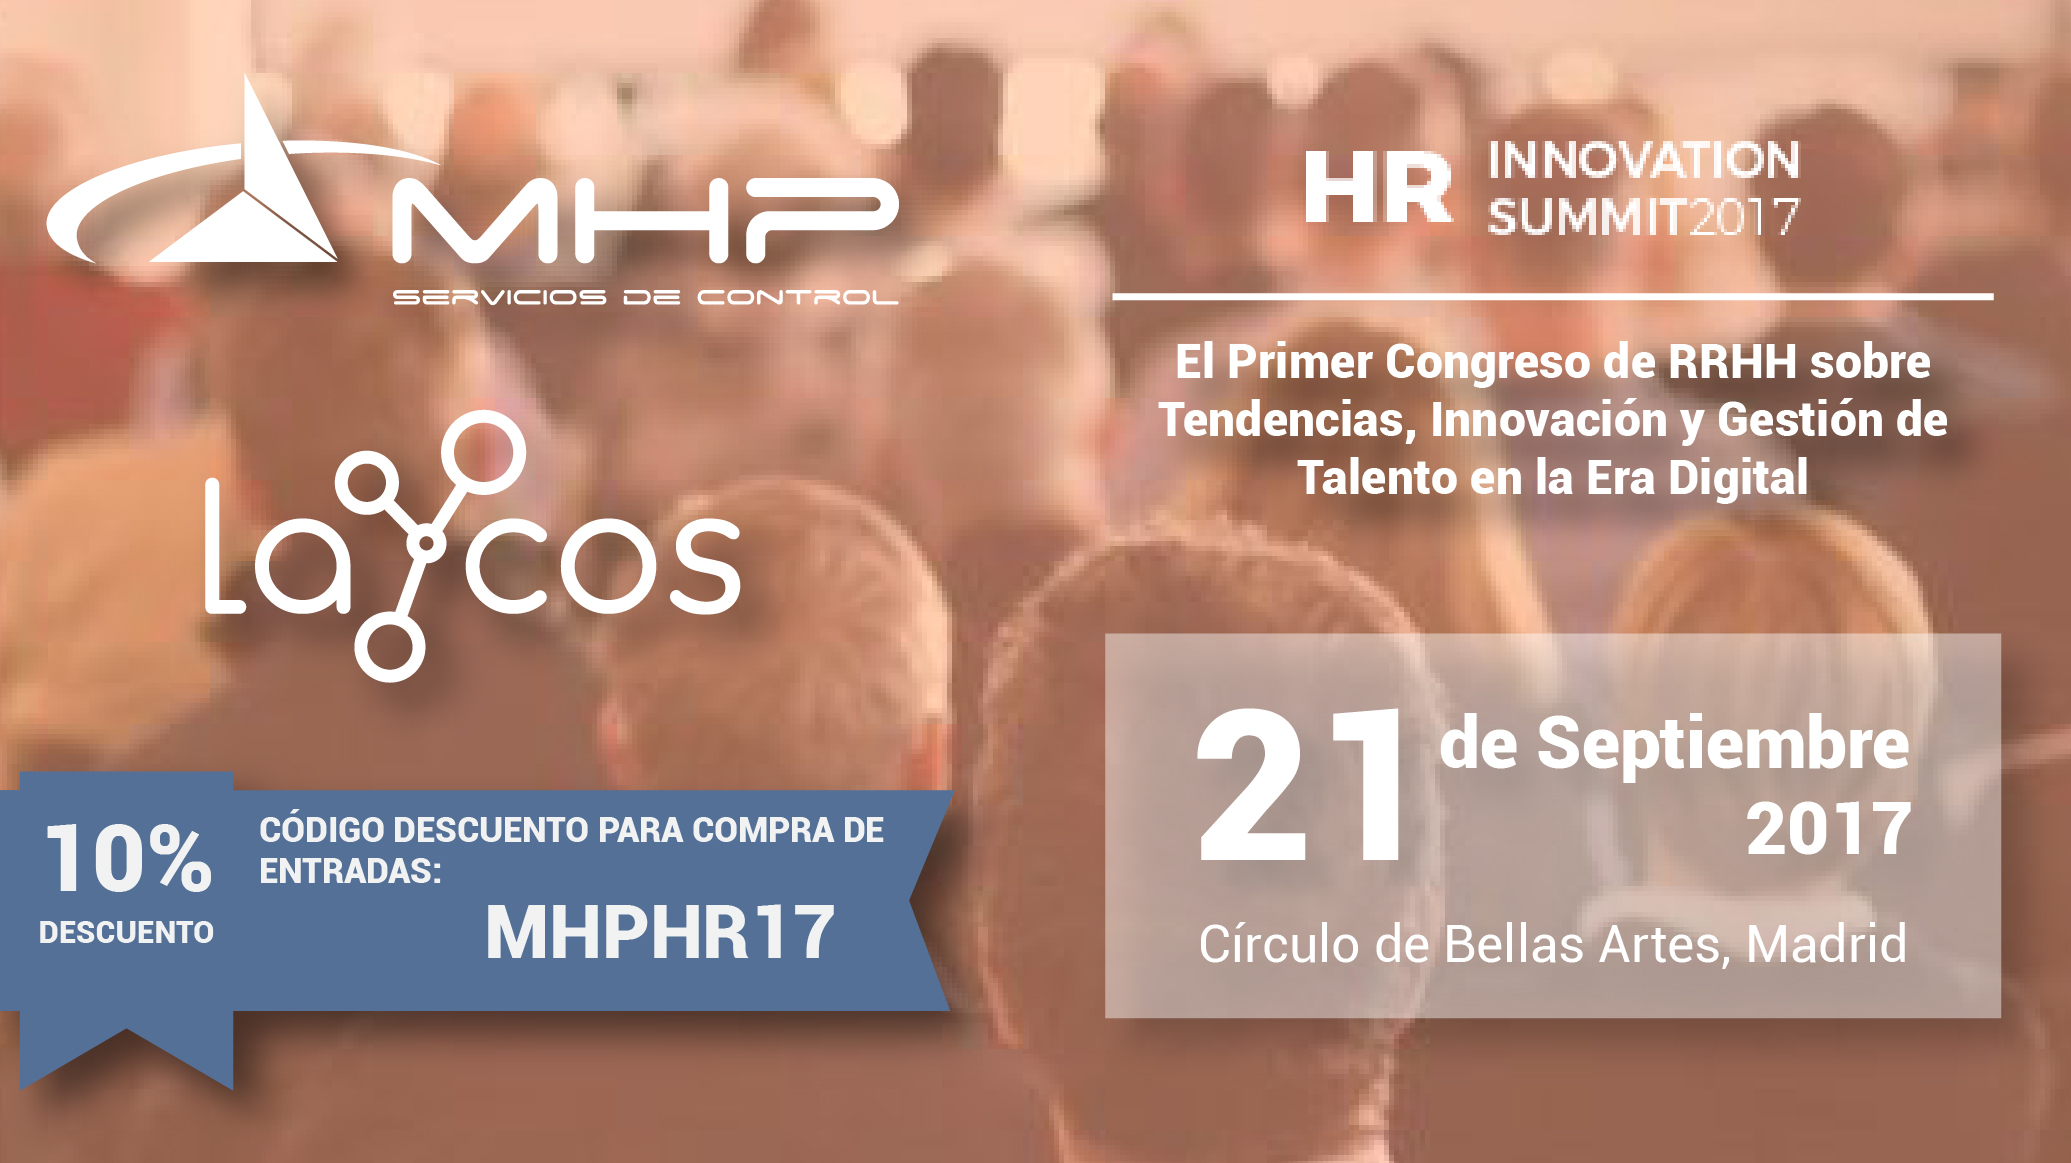 HR Innovation Summit 2017, Madrid